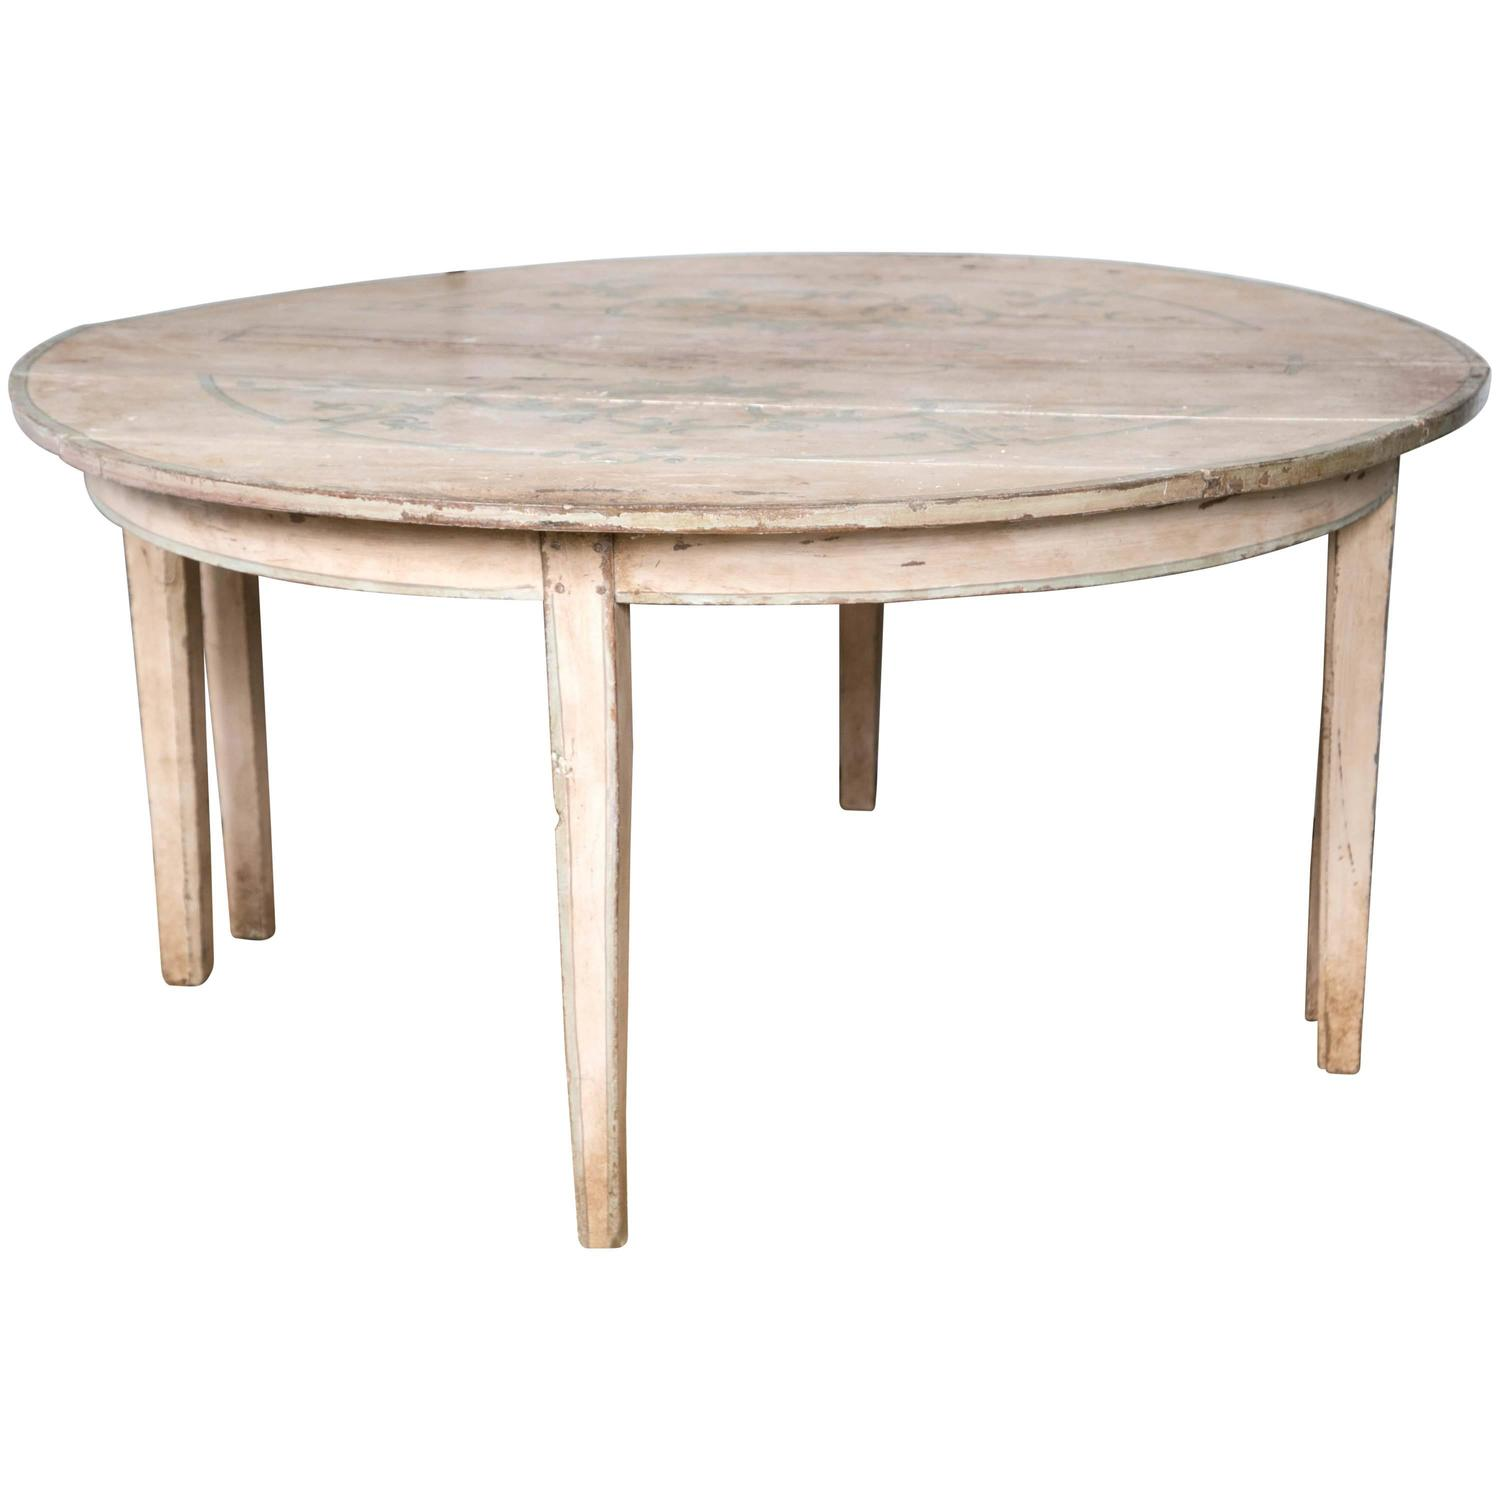 Round painted dining table for sale at 1stdibs for Dining room tables for sale